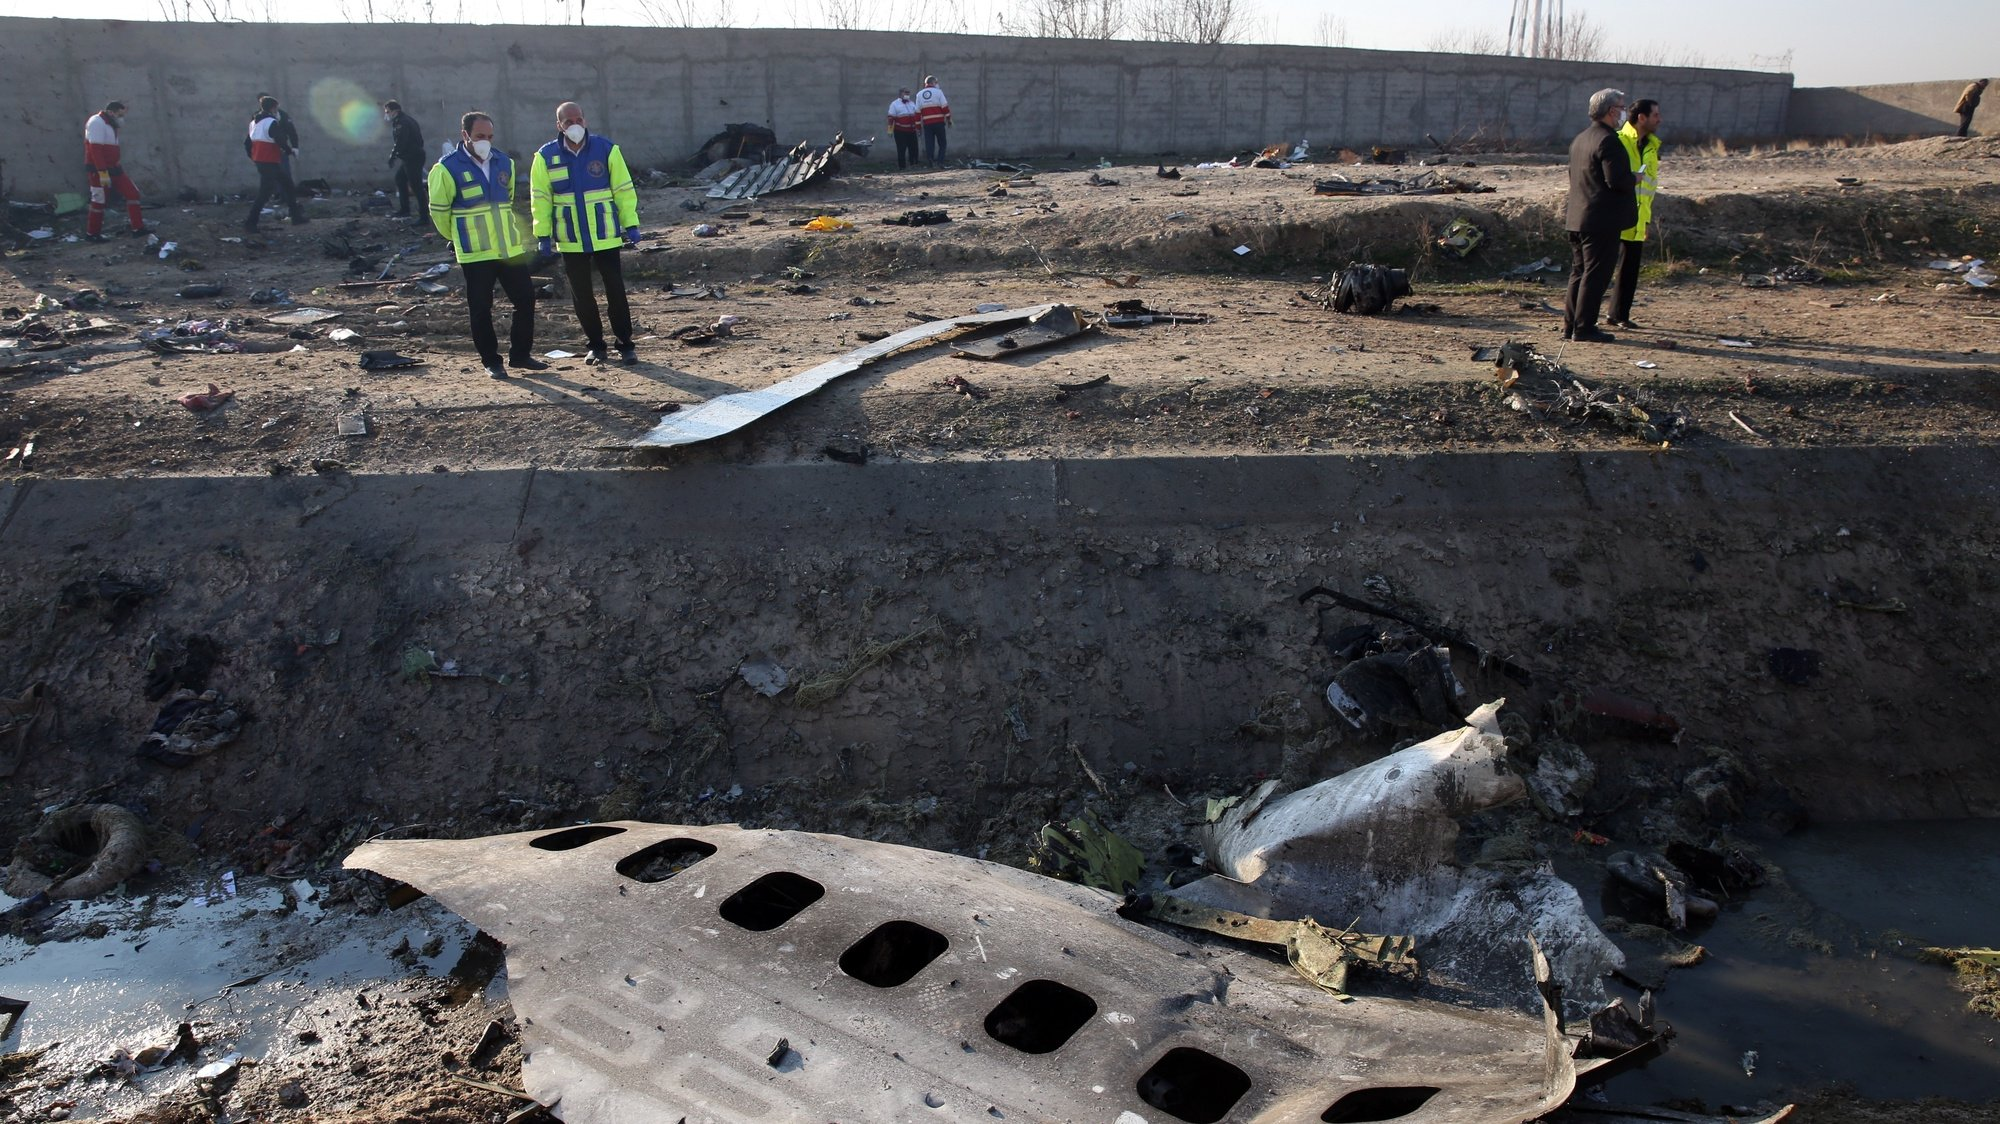 epa08553428 (FILE) - Officials stand near the wreckage after an Ukraine International Airlines Boeing 737-800 carrying 176 people crashed near Imam Khomeini Airport in Tehran, killing everyone on board; in Shahriar, Iran, 08 January 2020 (reissued 18 July 2020). Media reports state on 18 July 2020 that Iran has sent to France the black box of the Ukrainian passenger plane, which was accidentally downed by Iranian armed forces on 08 January 2020 near Tehran, killing all 176 people aboard, after mistaking it for an incoming missile. The black box will be read in Paris on 20 July 2020, media added. *** Local Caption *** 55750844